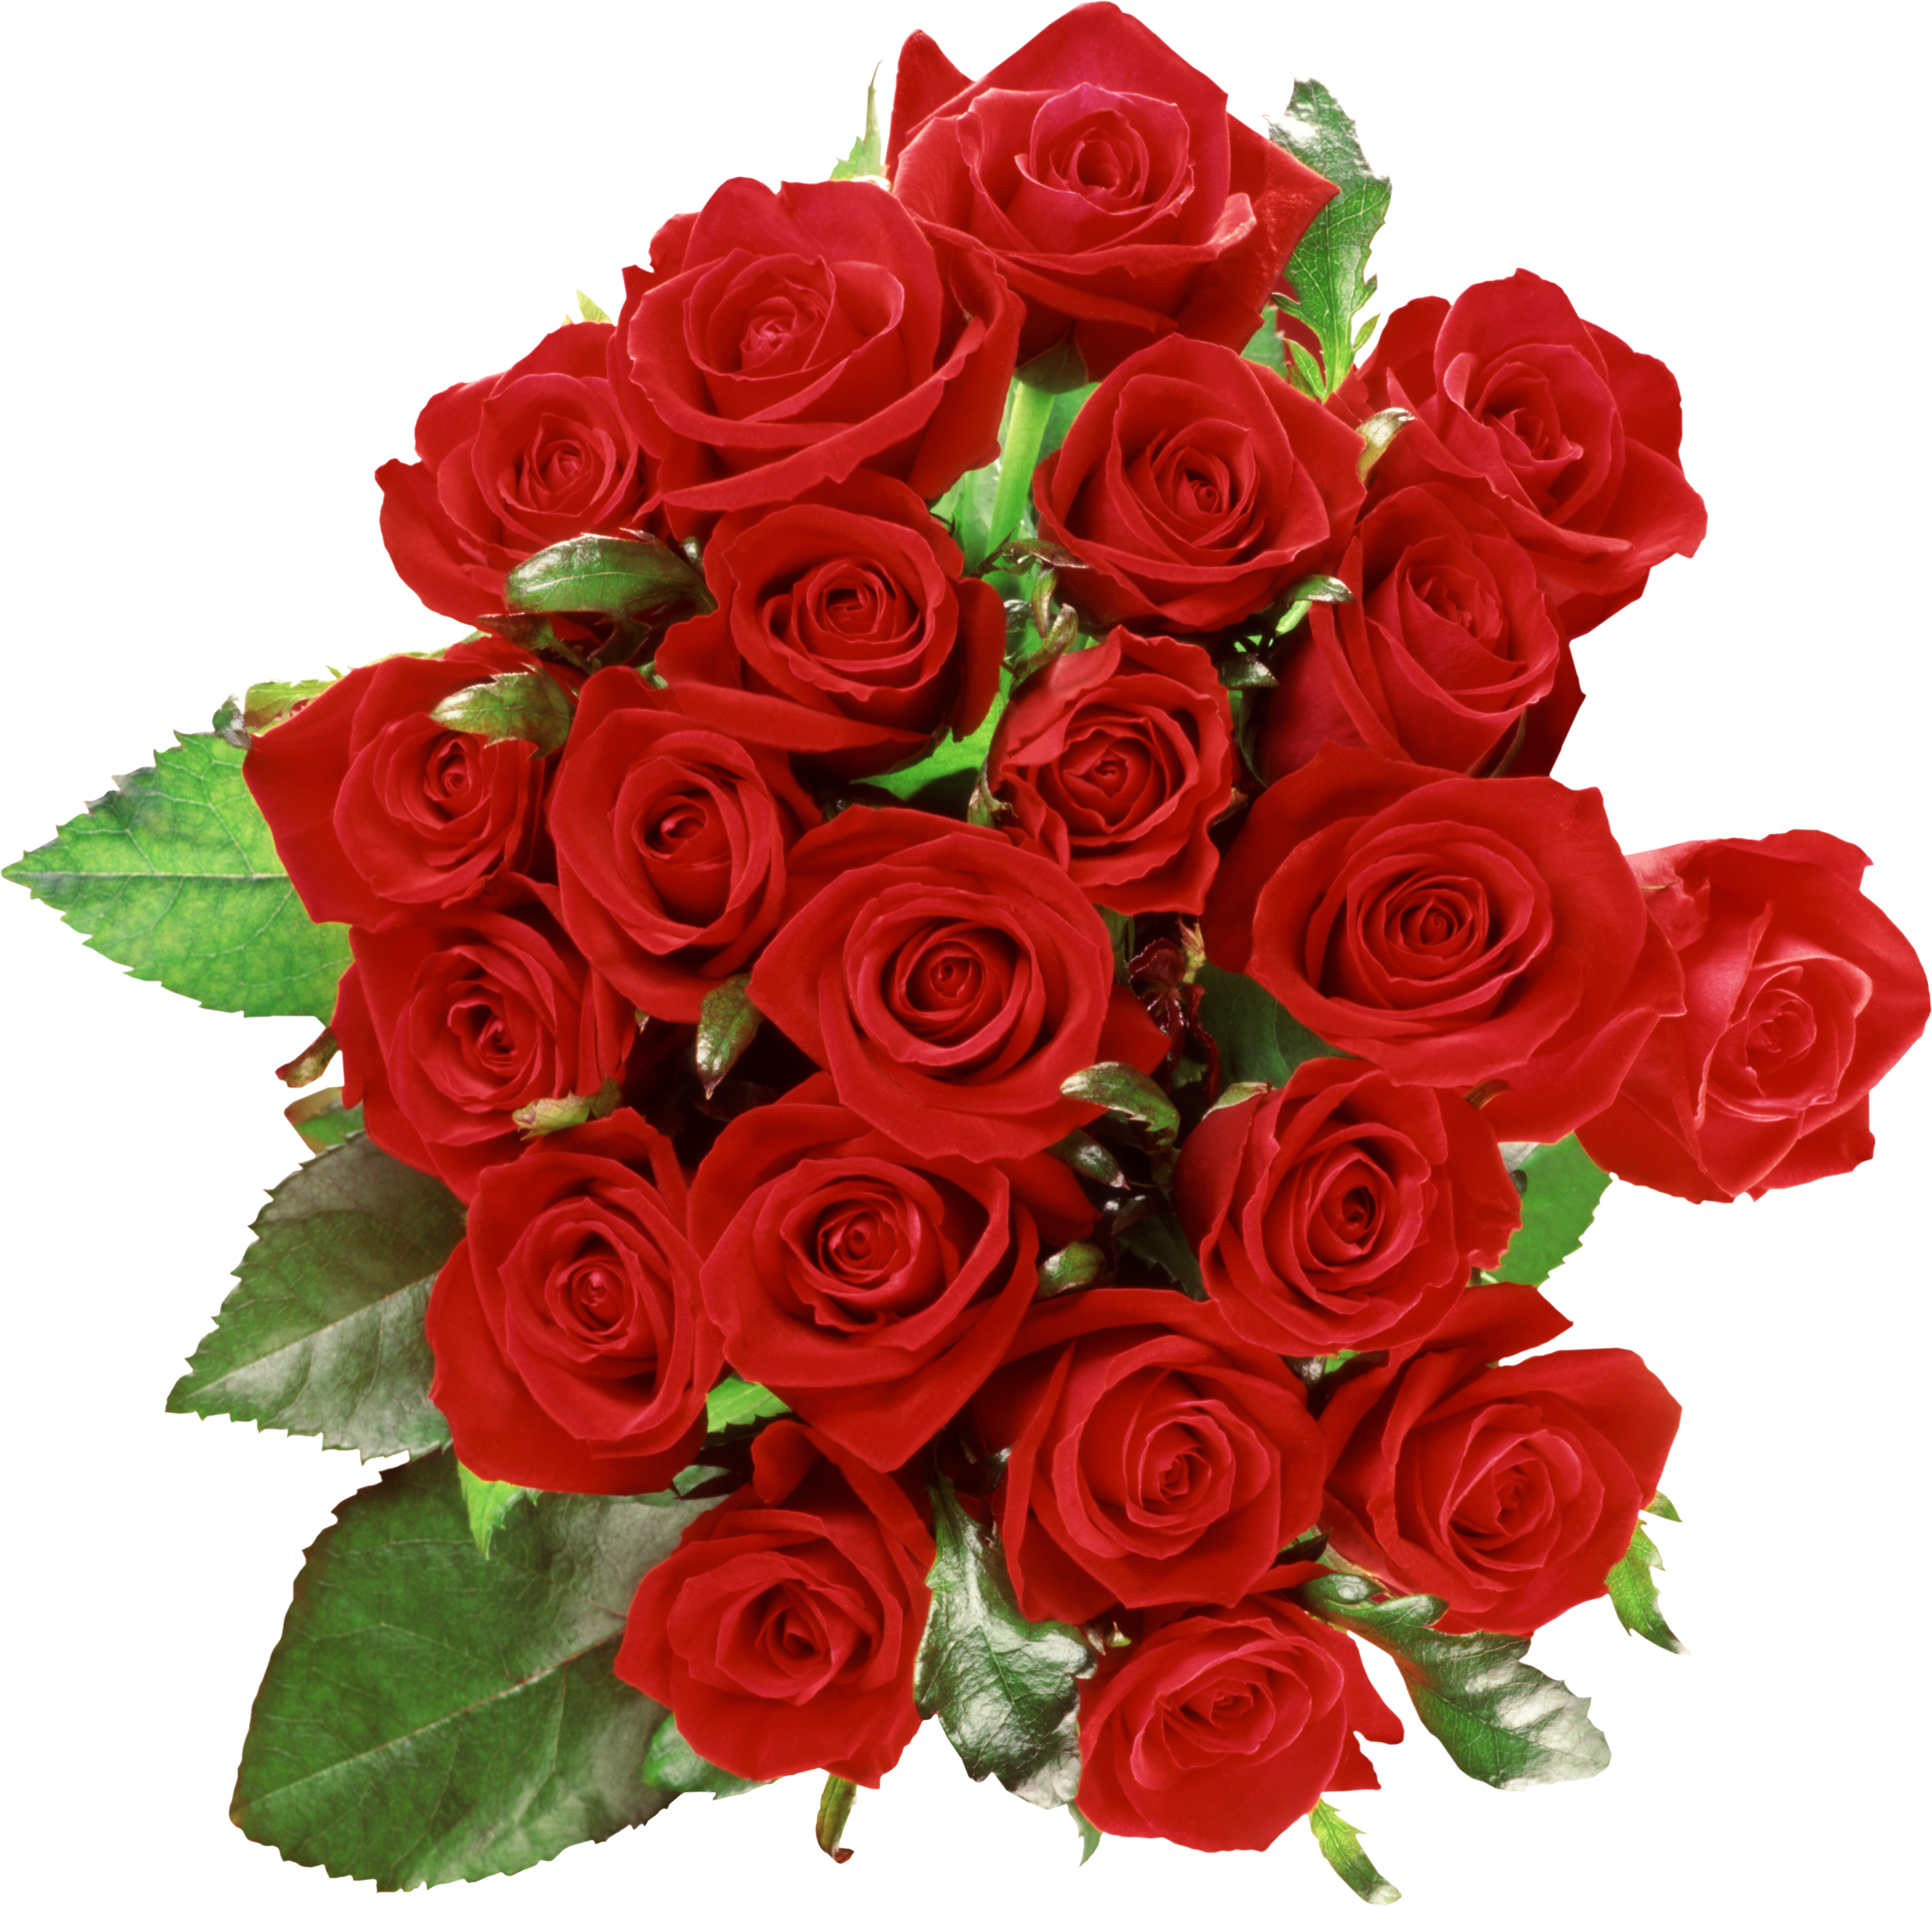 Hibiscus clipart phool. Red roses wedding bouquet